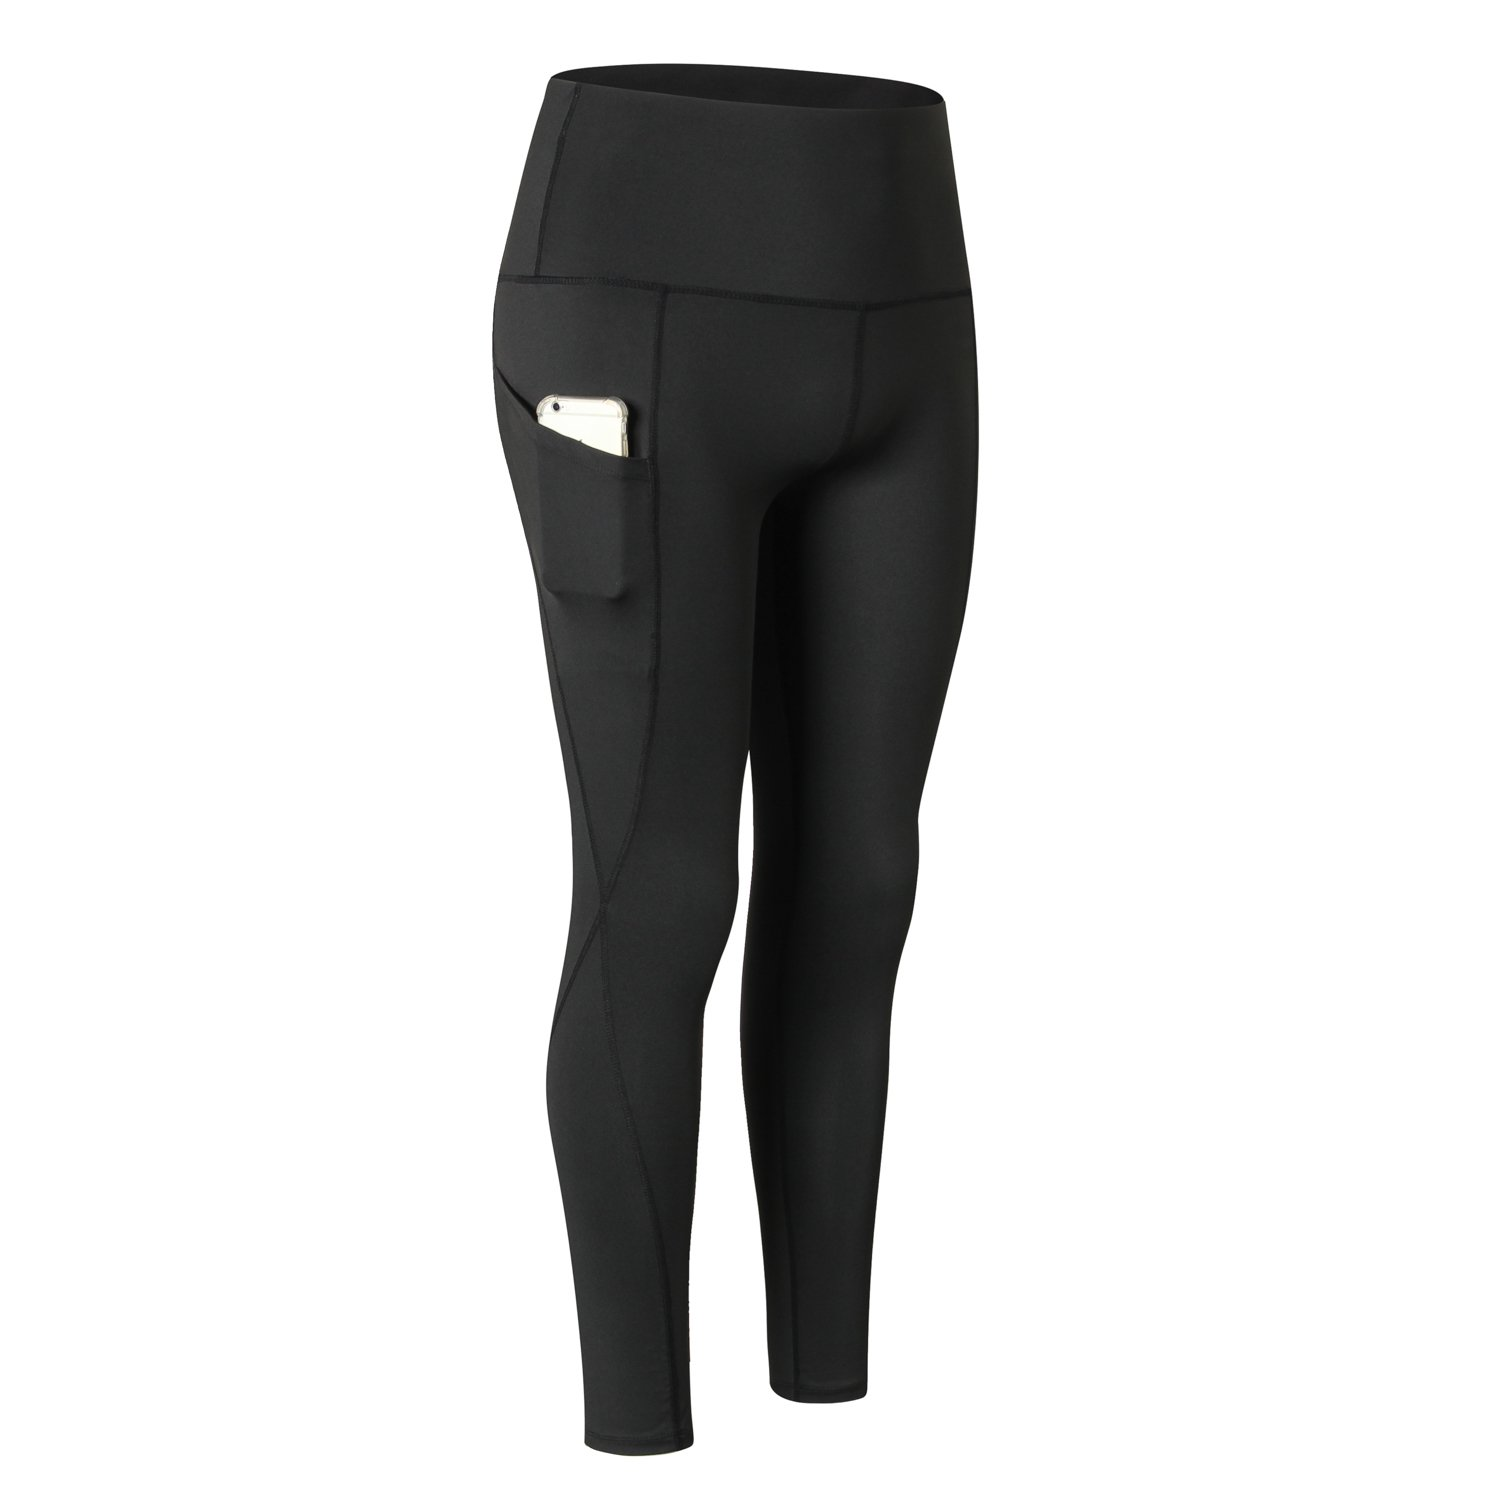 0ddabe210359a Top 10 wholesale 4 Way Stretch Leggings - Chinabrands.com